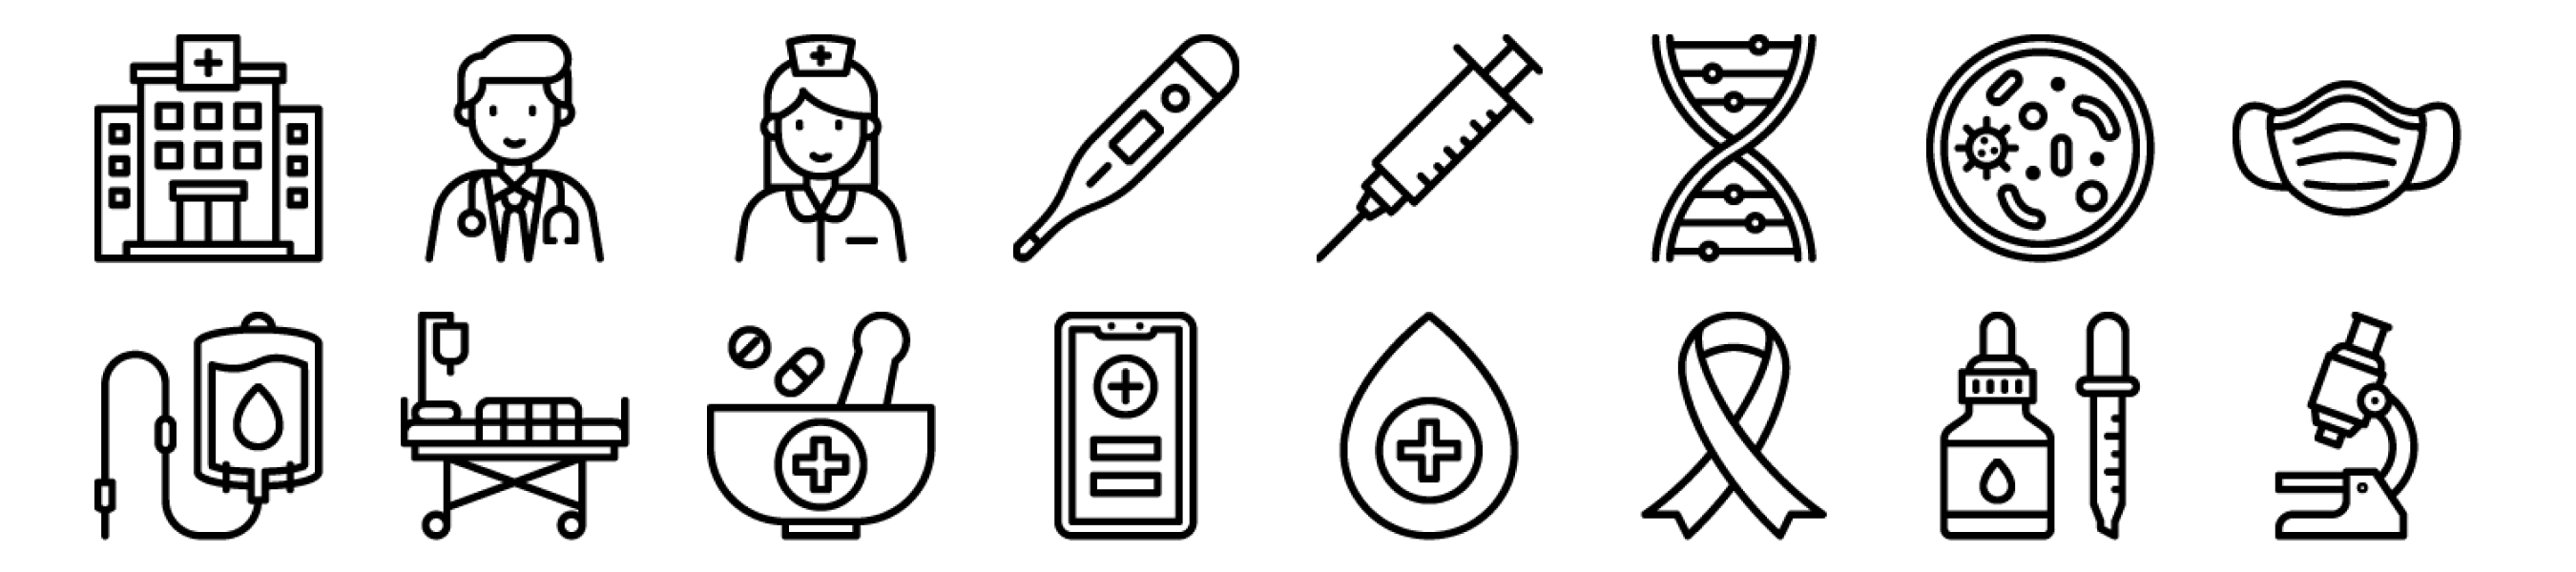 Medical & Health Icons